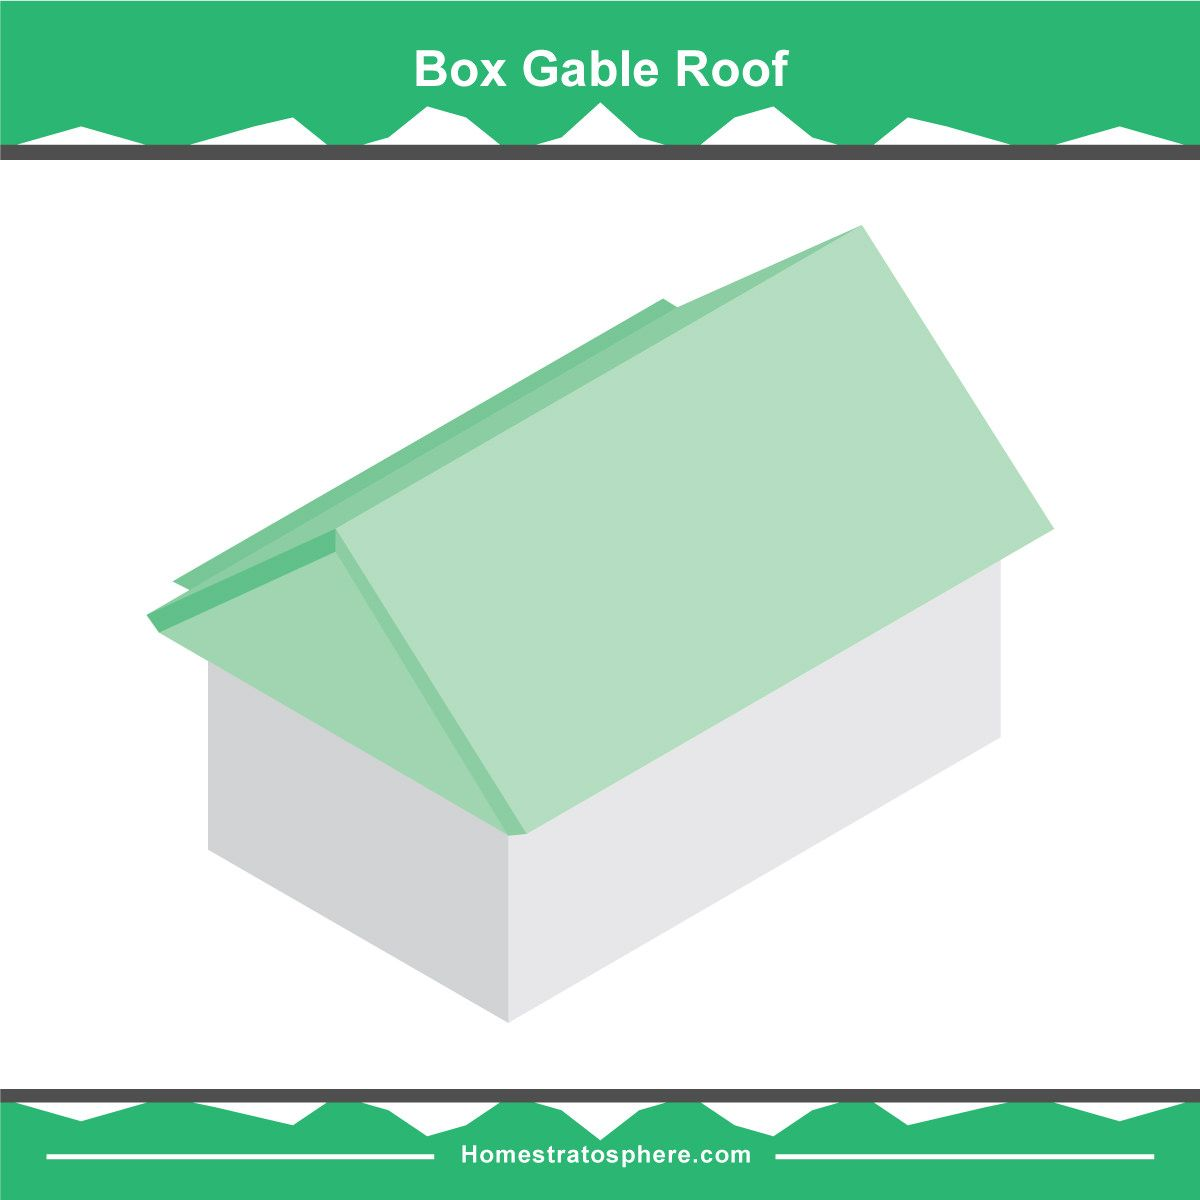 36 Types Of Roofs Styles For Houses Illustrated Roof Design Examples Gable Roof Design Roof Design Home Roof Design